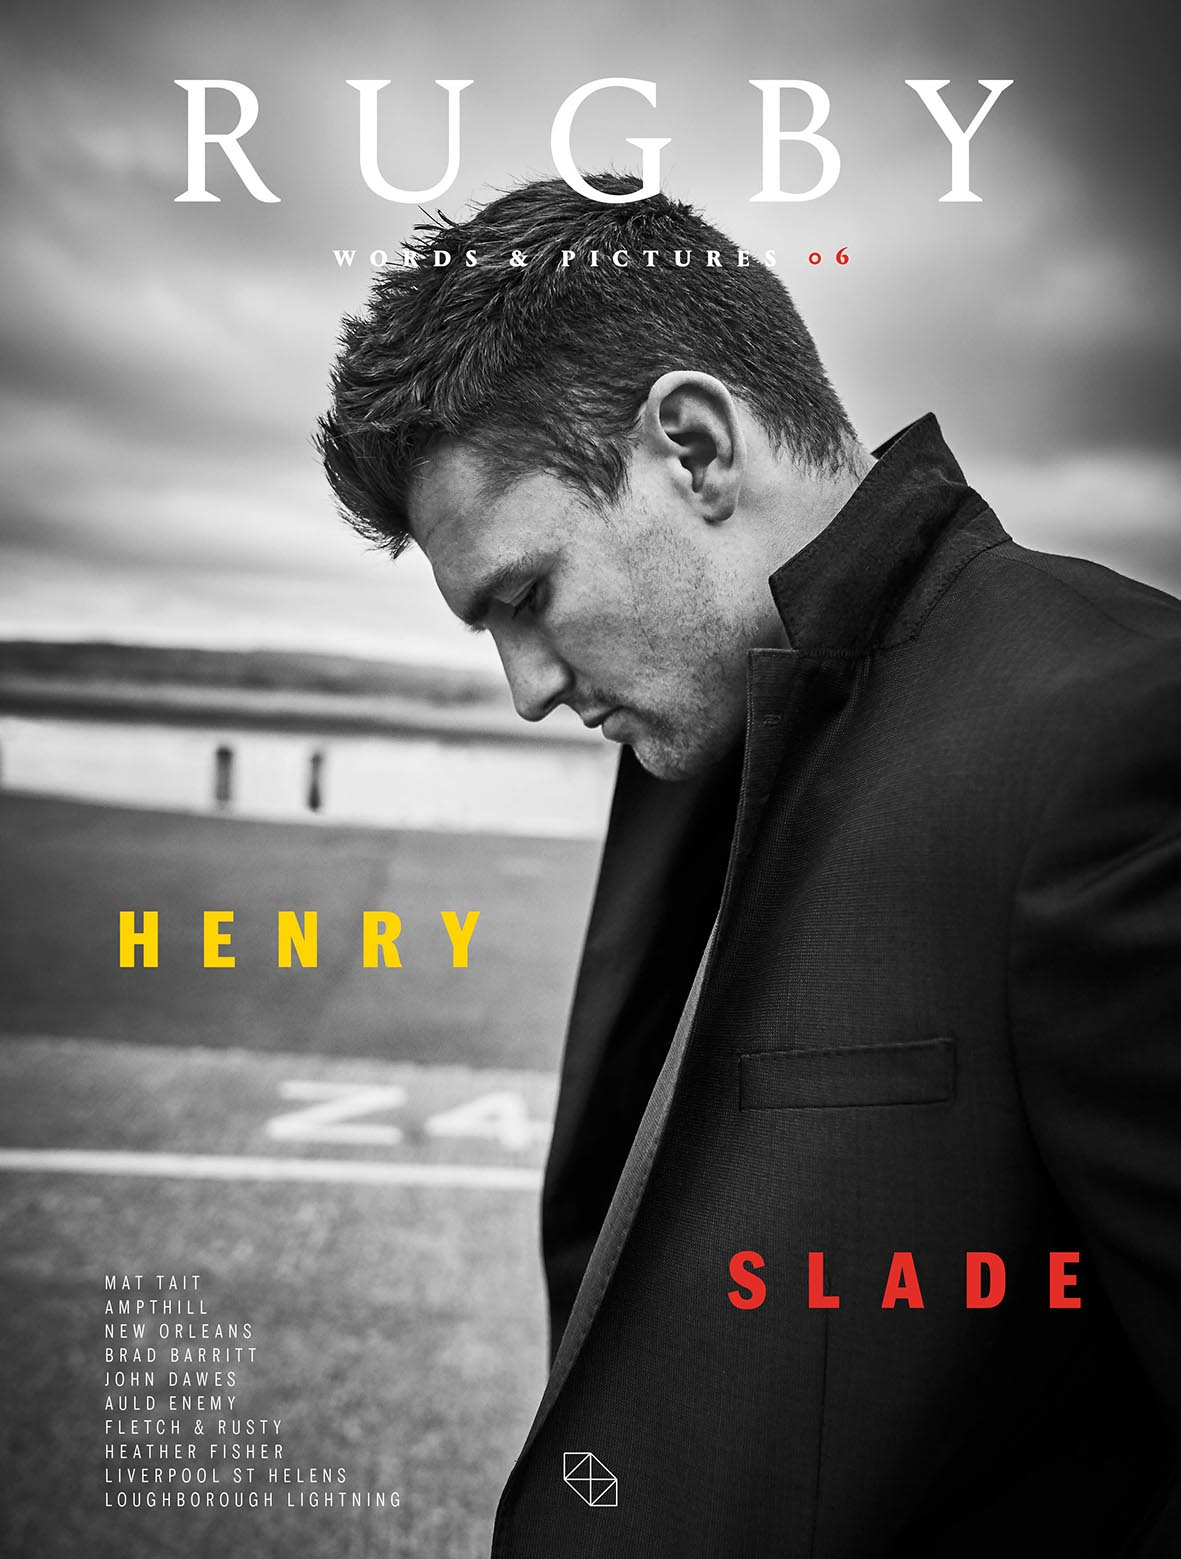 Issue 6 Henry Slade, New Orleans, Loughborough Lightning, Liverpool St Helens, John Dawes, Brad Barritt – Russell Earnshaw & John Fletcher, Heather Fisher, Ampthill, Auld Enemy and more… -